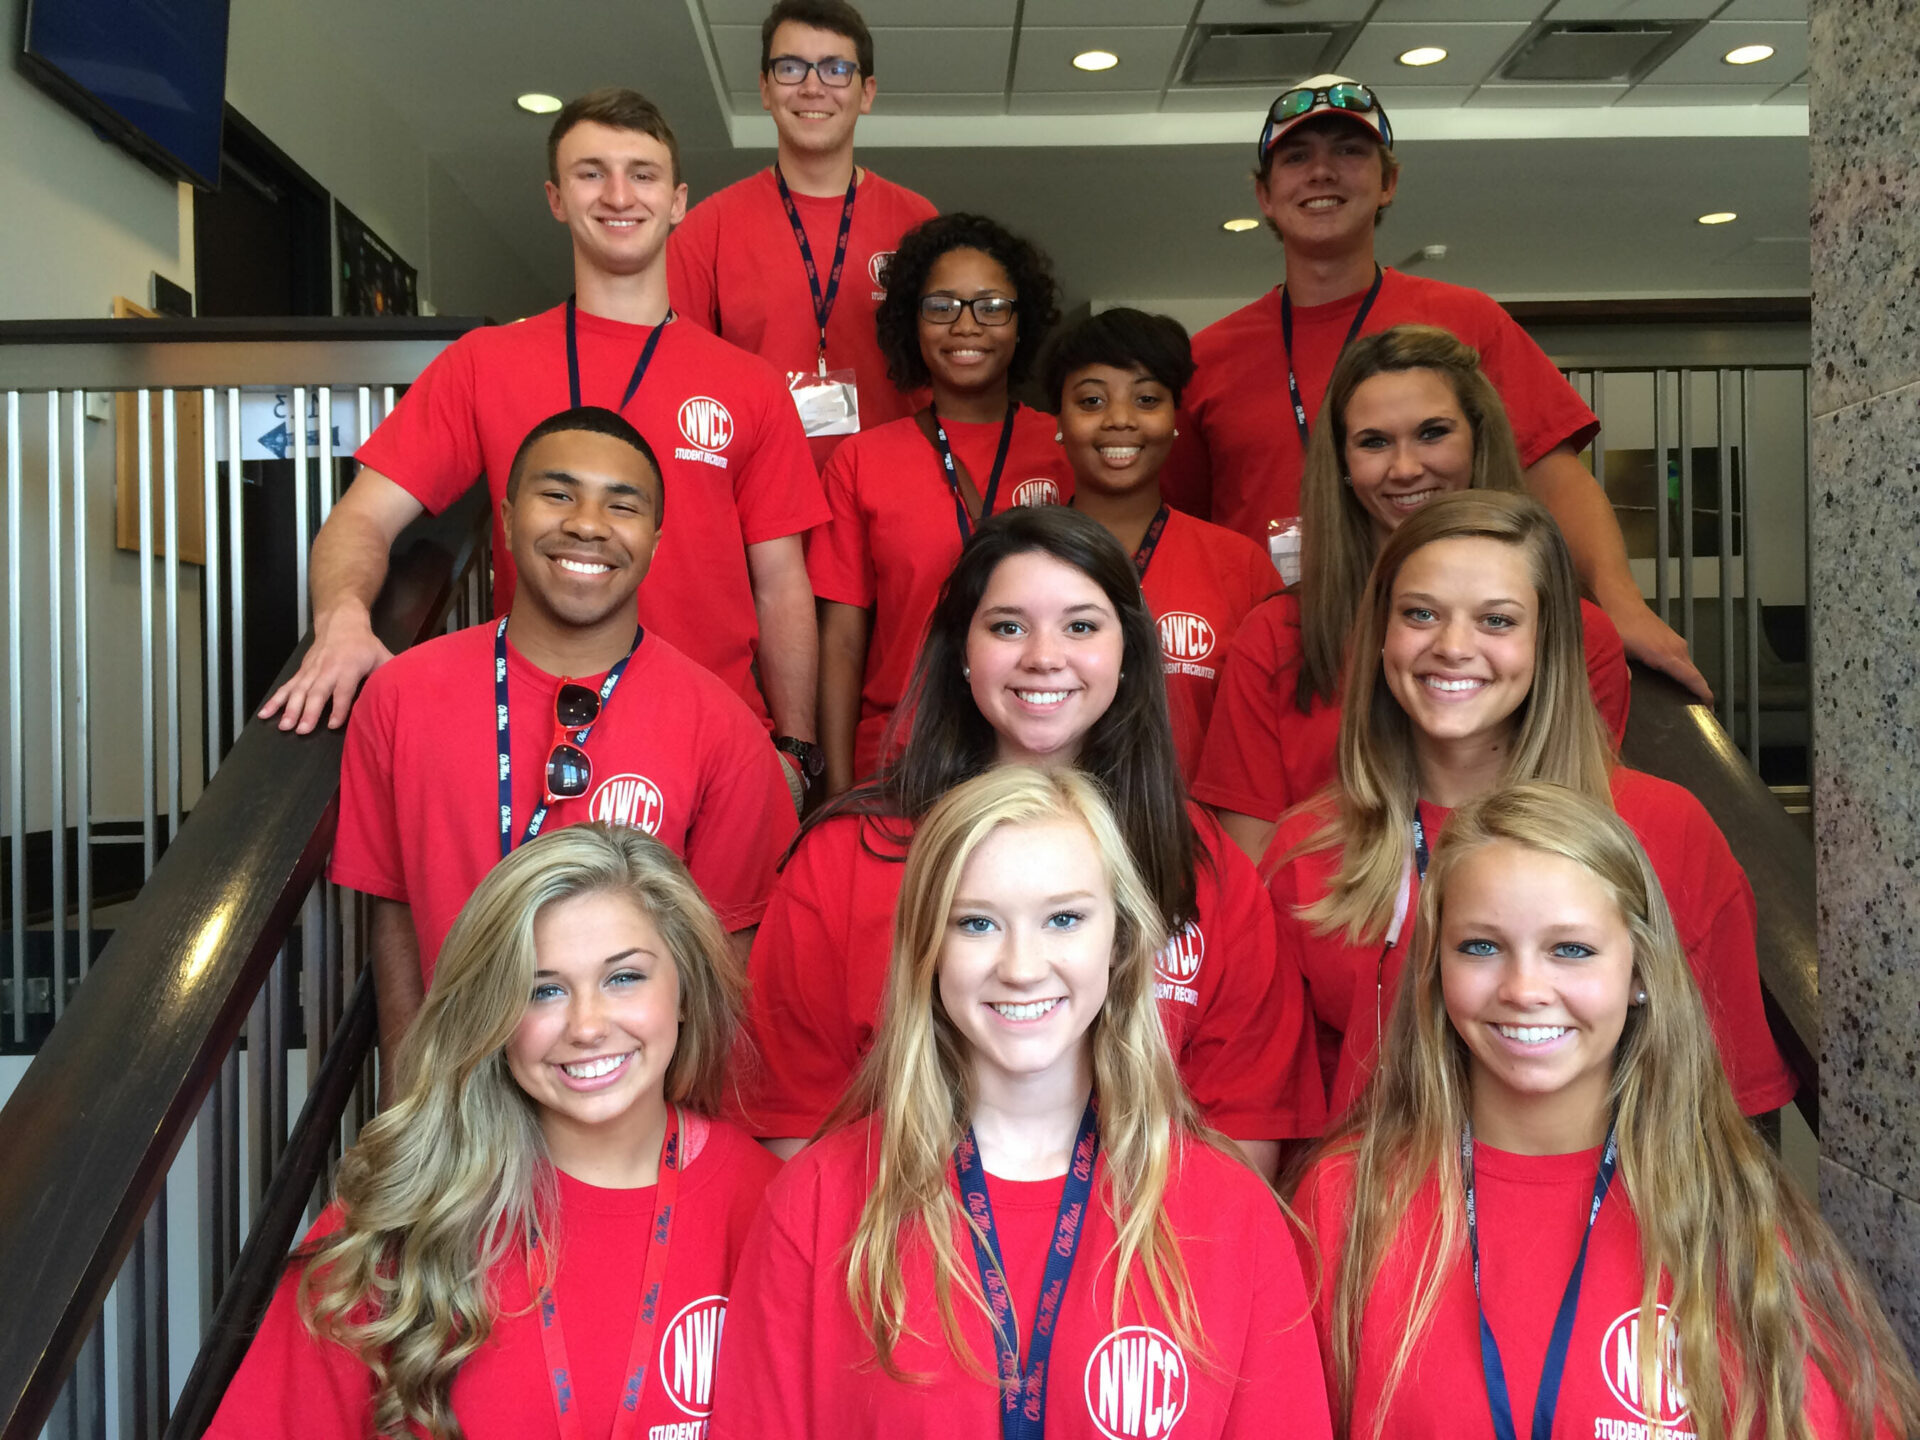 Students who participated in the summit are (front row, l-r) Calla Basil of Blue Springs, Lindsey Douglas of Enid and Kallie Adair of Senatobia; (second row, l-r) Jaron Cole of Hernando, Hanna Legendre of Senatobia and Kendall Kimberlin of Olive Branch; (third row, l-r) David Worley of Senatobia, Laraneisha Fairlee of Sumner, Marissa Edwards of Southaven and Mary Cassidy McLauglin of Senatobia and (top row, l-r) Noah Fleener of Olive Branch and Brandon Smith of Senatobia.  (Photo by Abby Embrey)